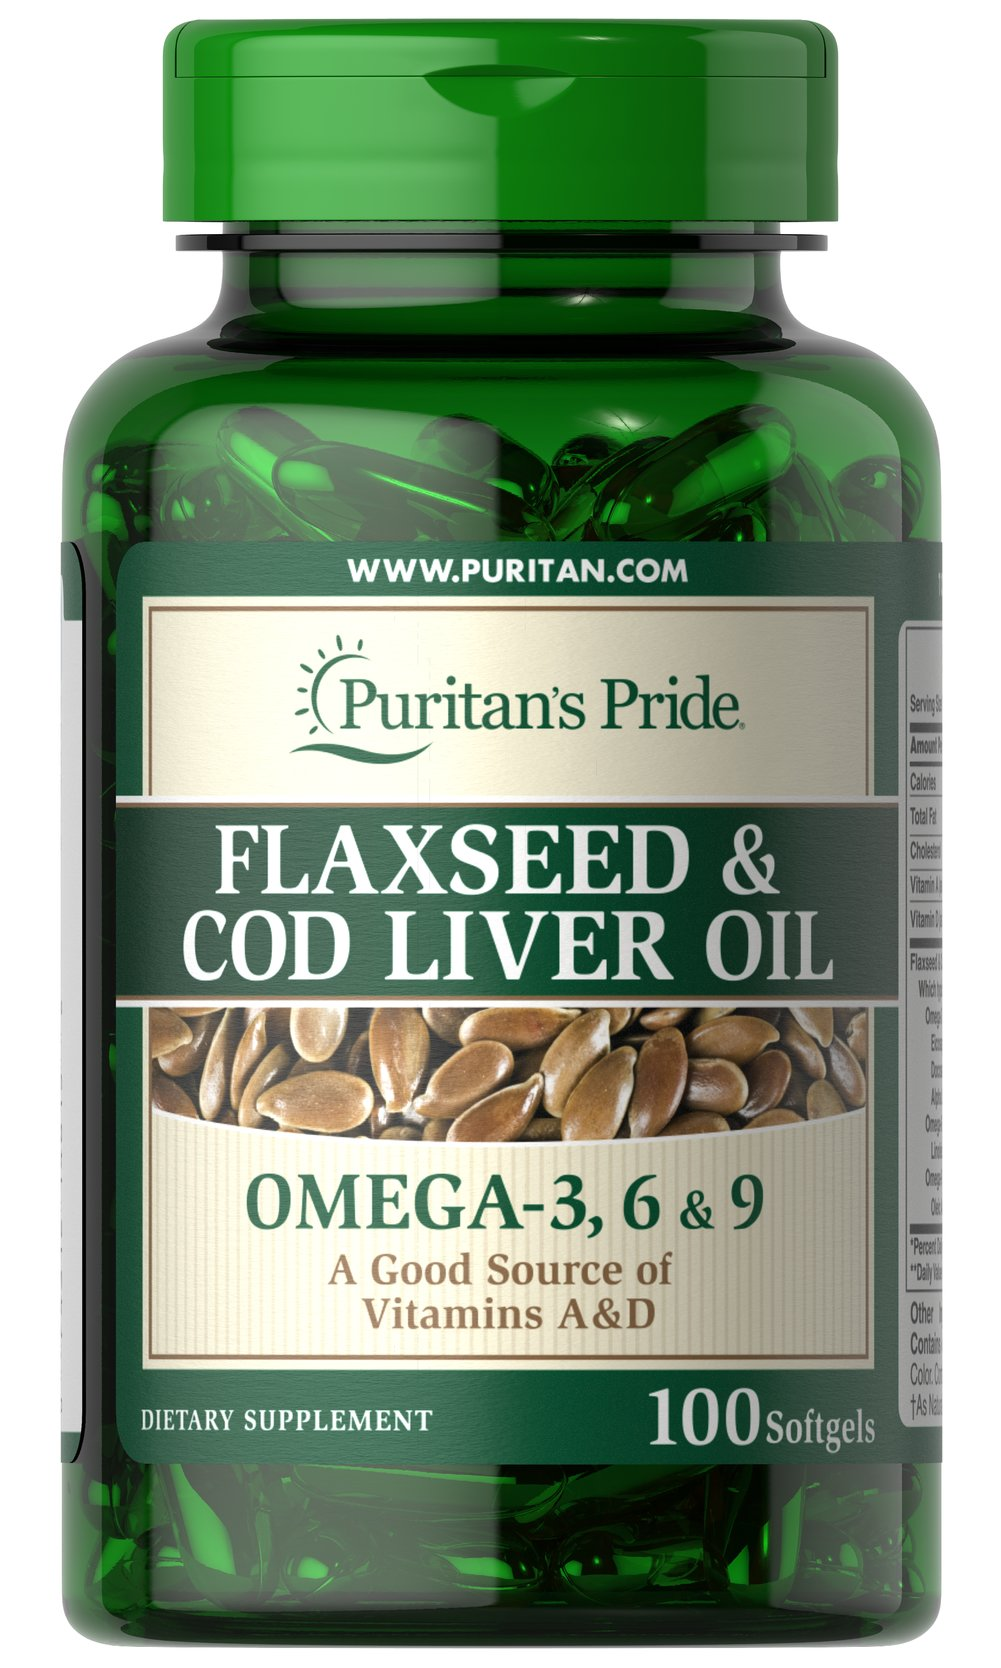 Flaxseed & Cod Liver Oil 1000 mg Omega 3, 6 & 9  100 Softgels 1000 mg $14.99